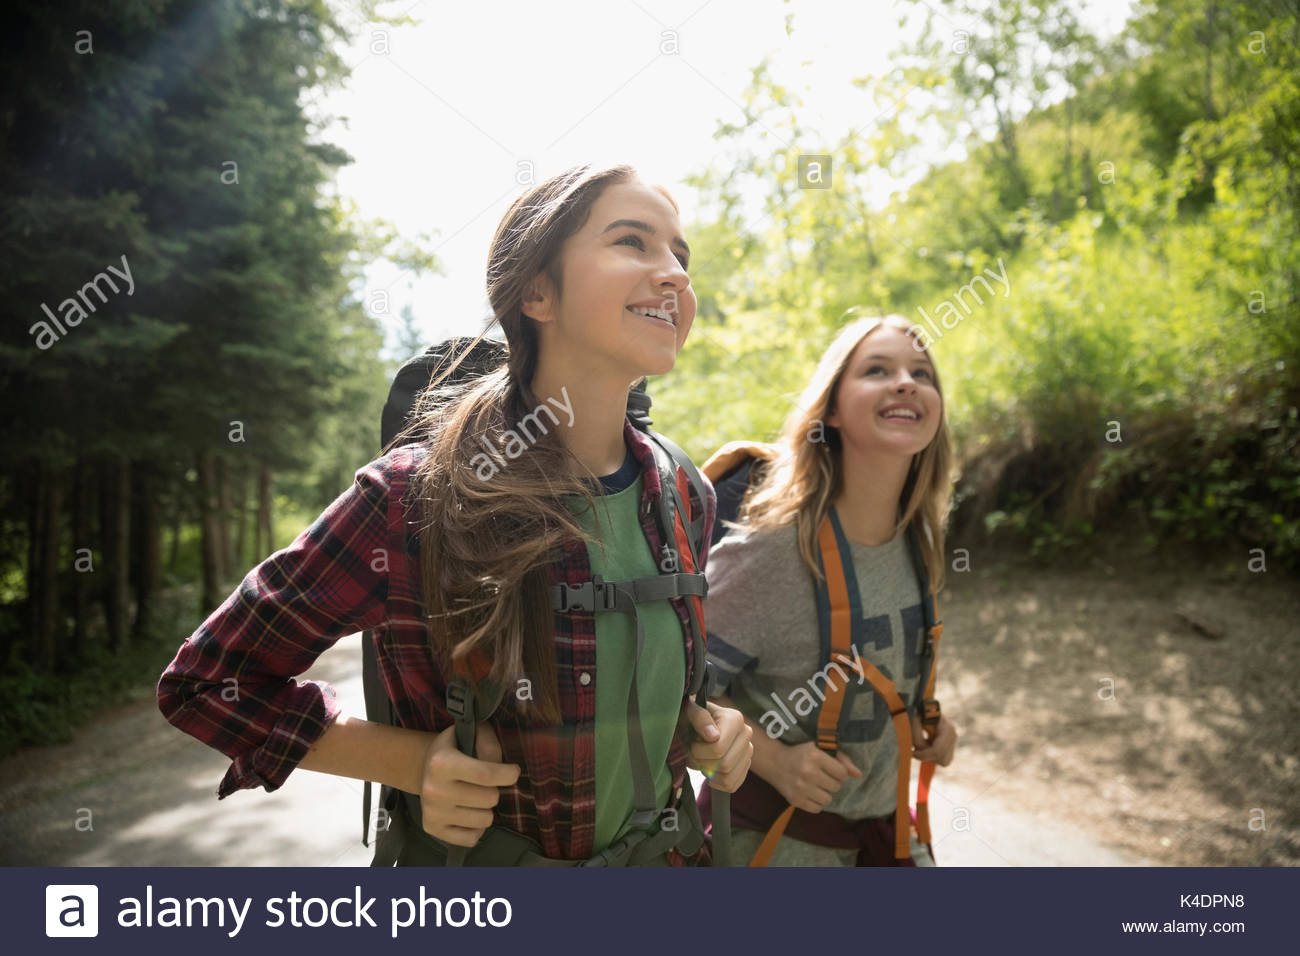 Curious, smiling teenage girl friends with backpacks hiking in woods - Stock Image